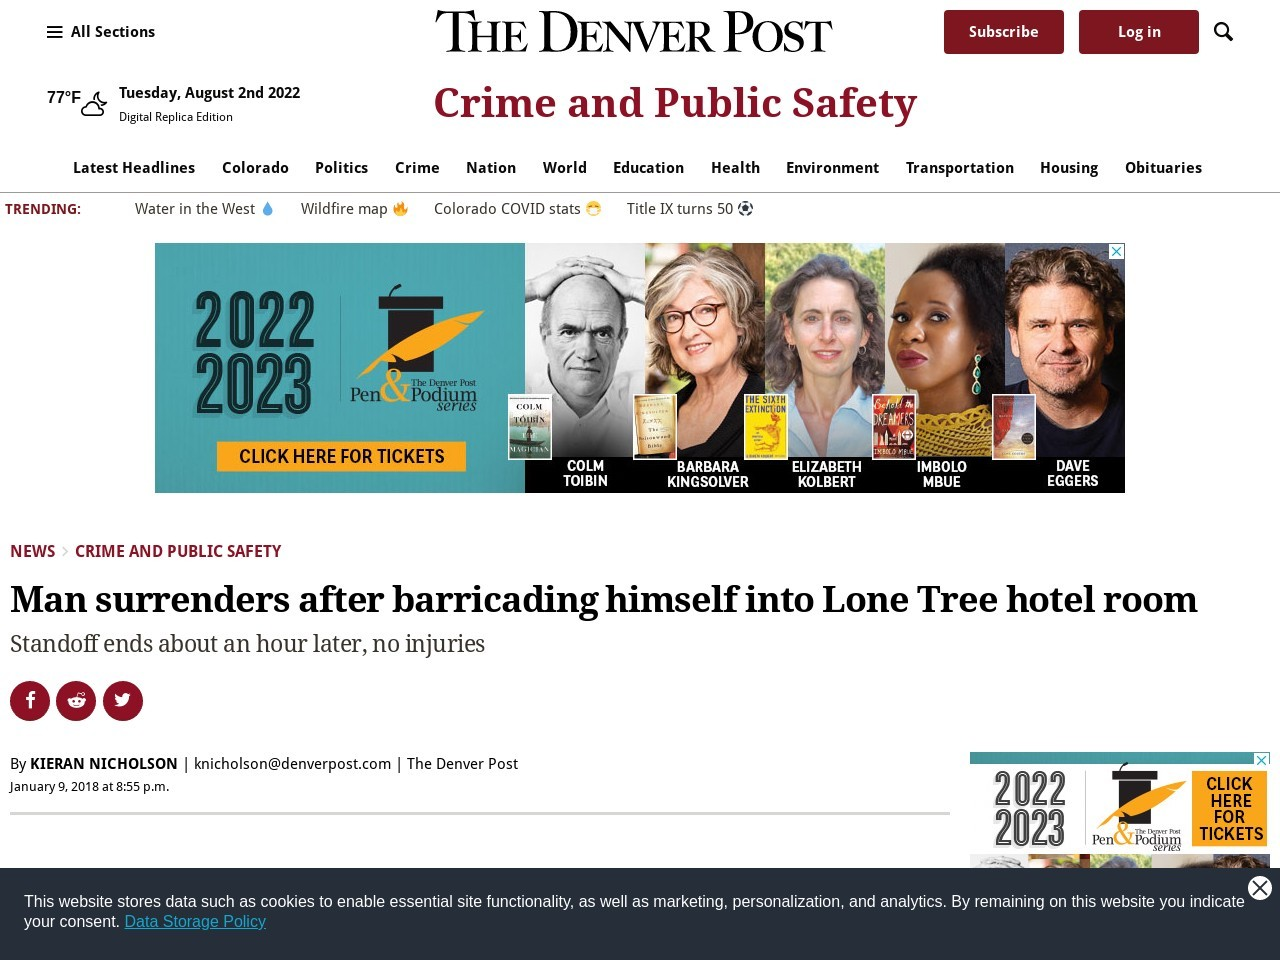 Man surrenders after barricading himself into Lone Tree hotel room